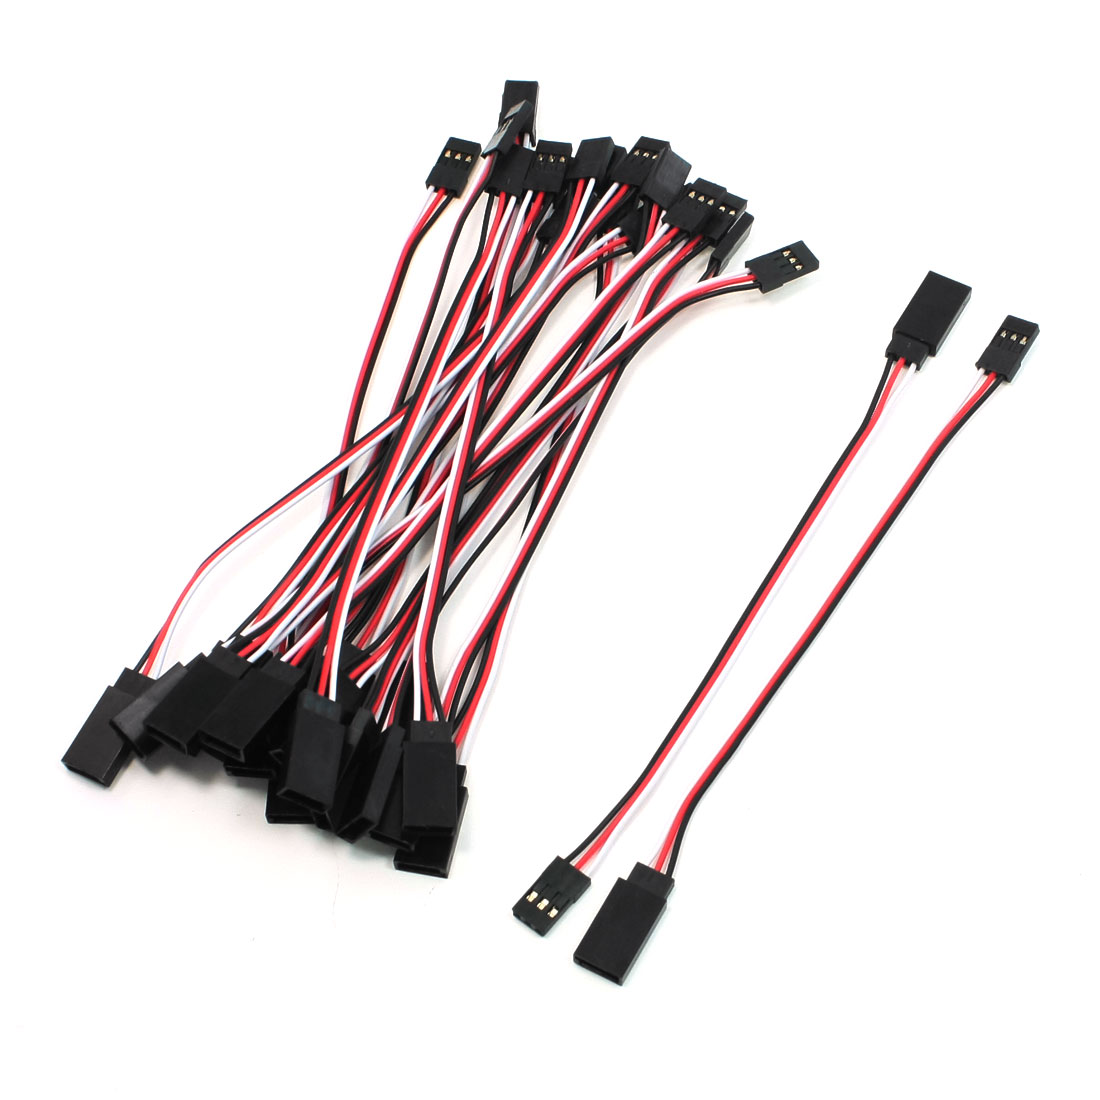 20 Pcs 13cm Male to Female 3pin M/F Servo Extension Cable for Futaba JR